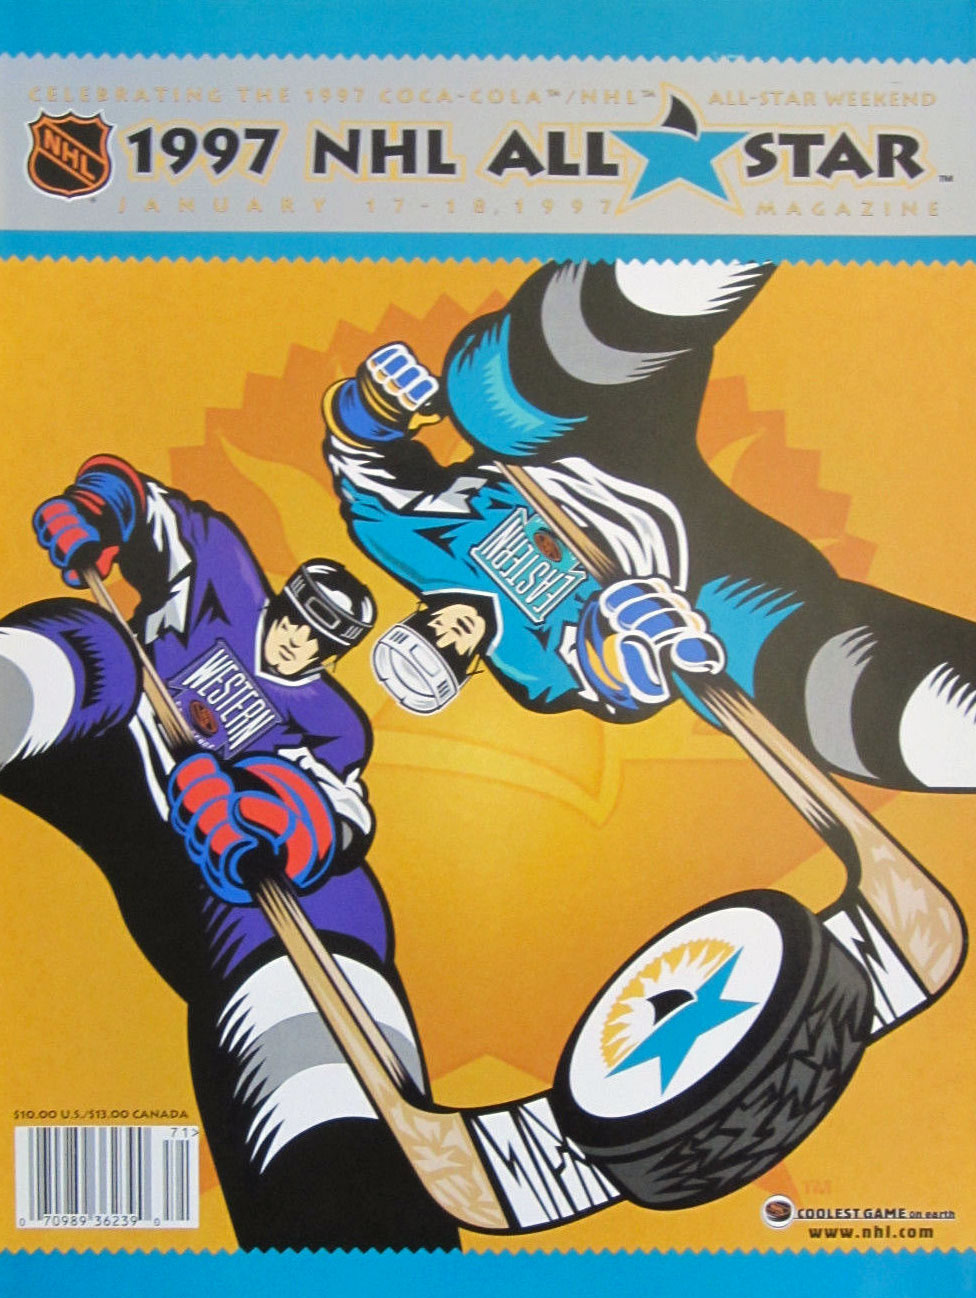 1997 National Hockey League All-Star Game - Wikipedia